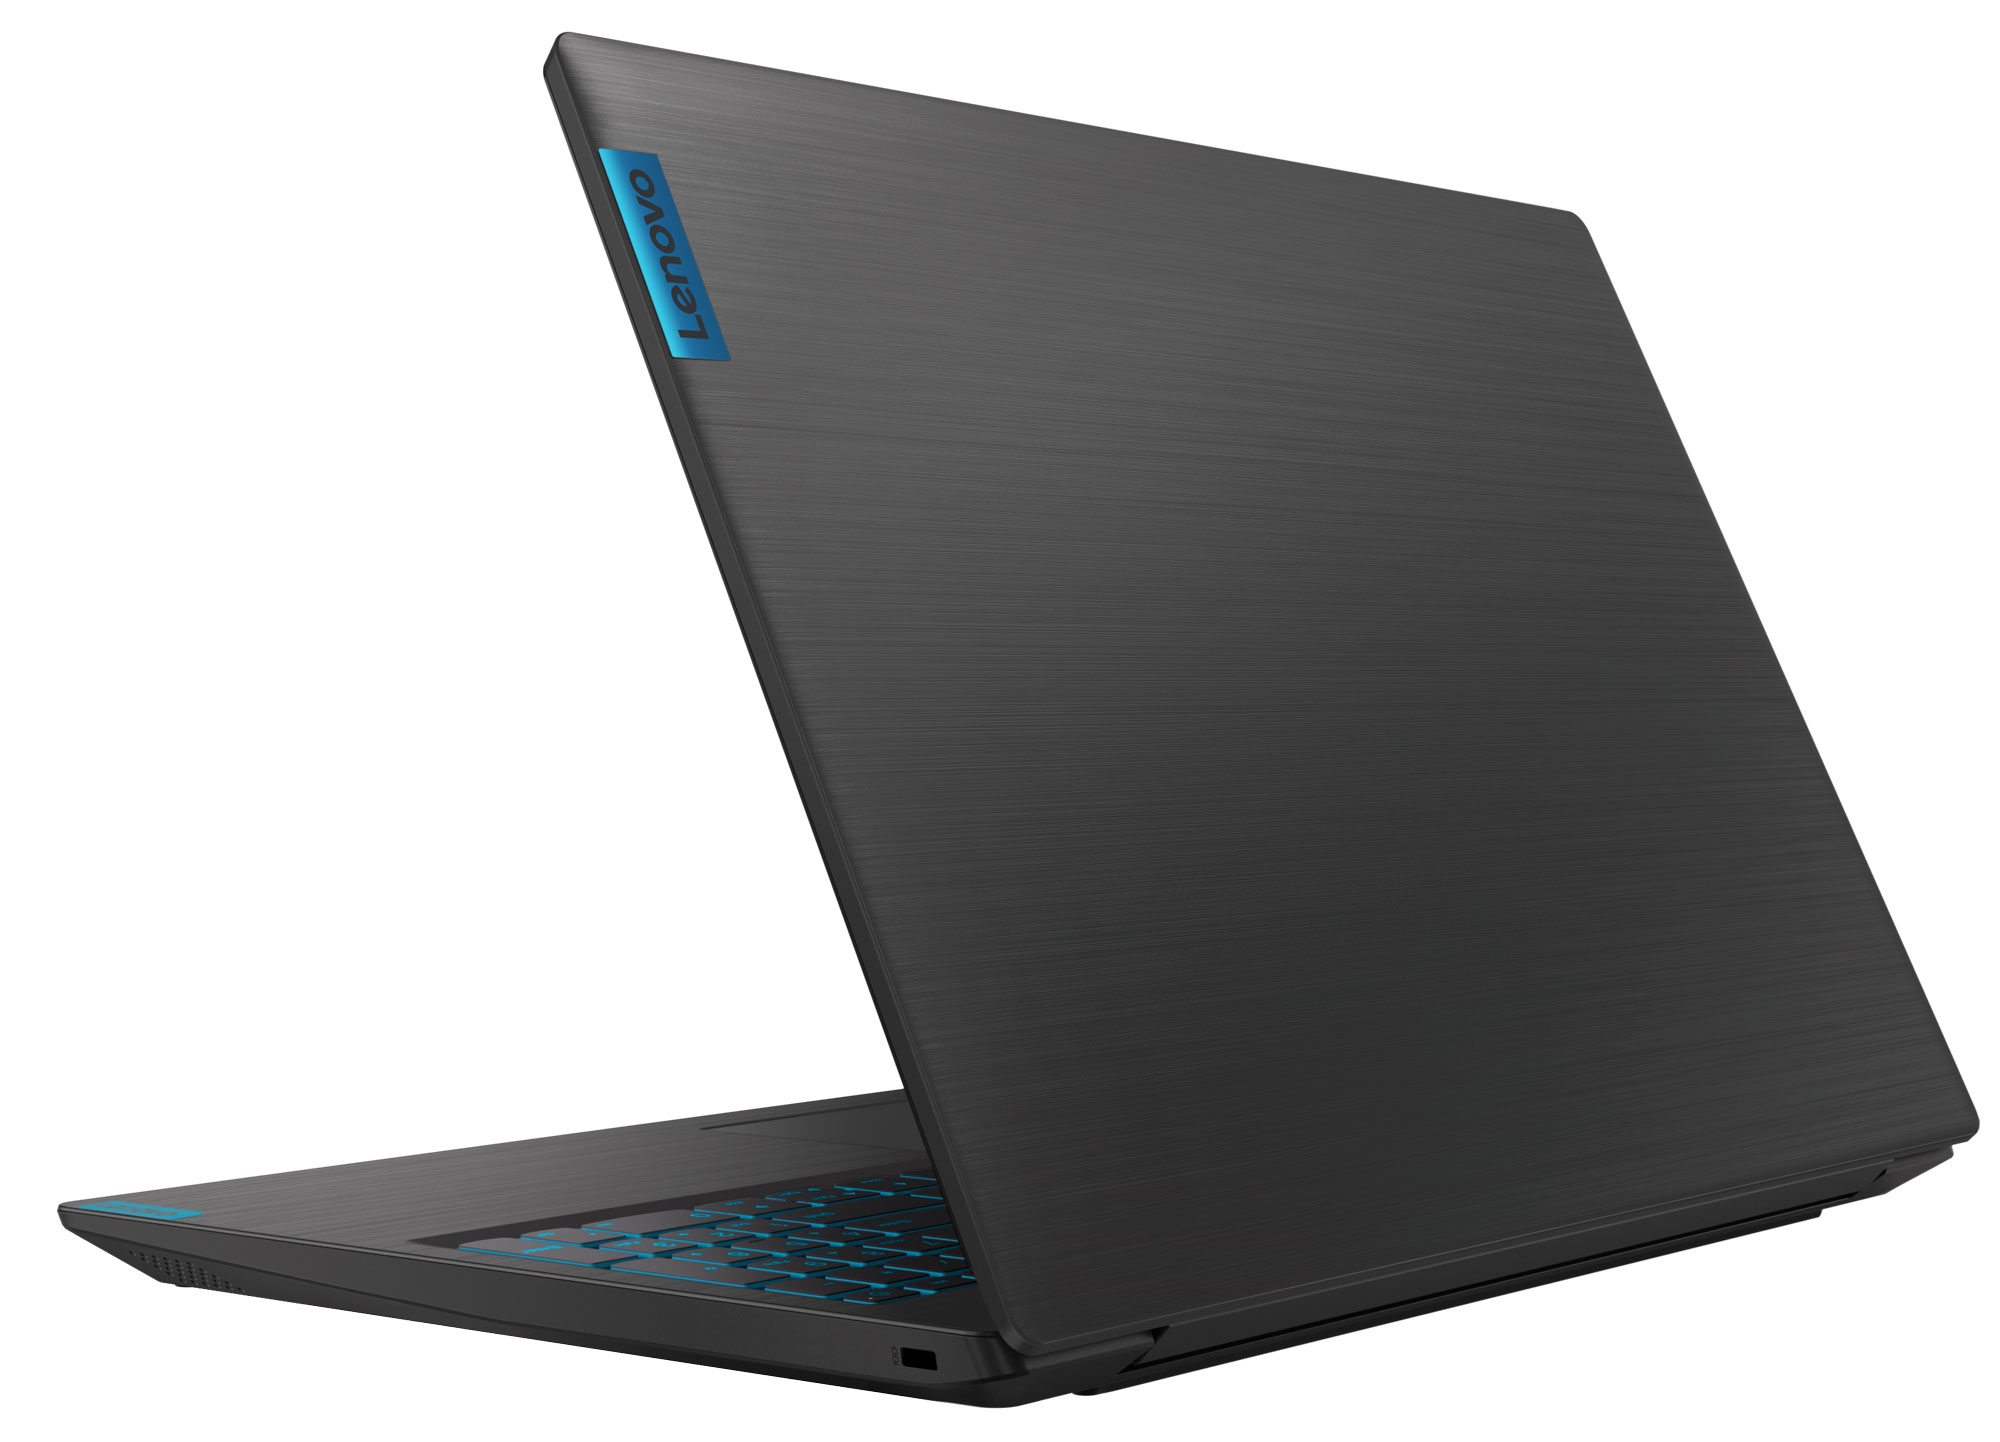 Фото  Ноутбук Lenovo ideapad L340-15IRH Gaming Black (81LK00TYRE)